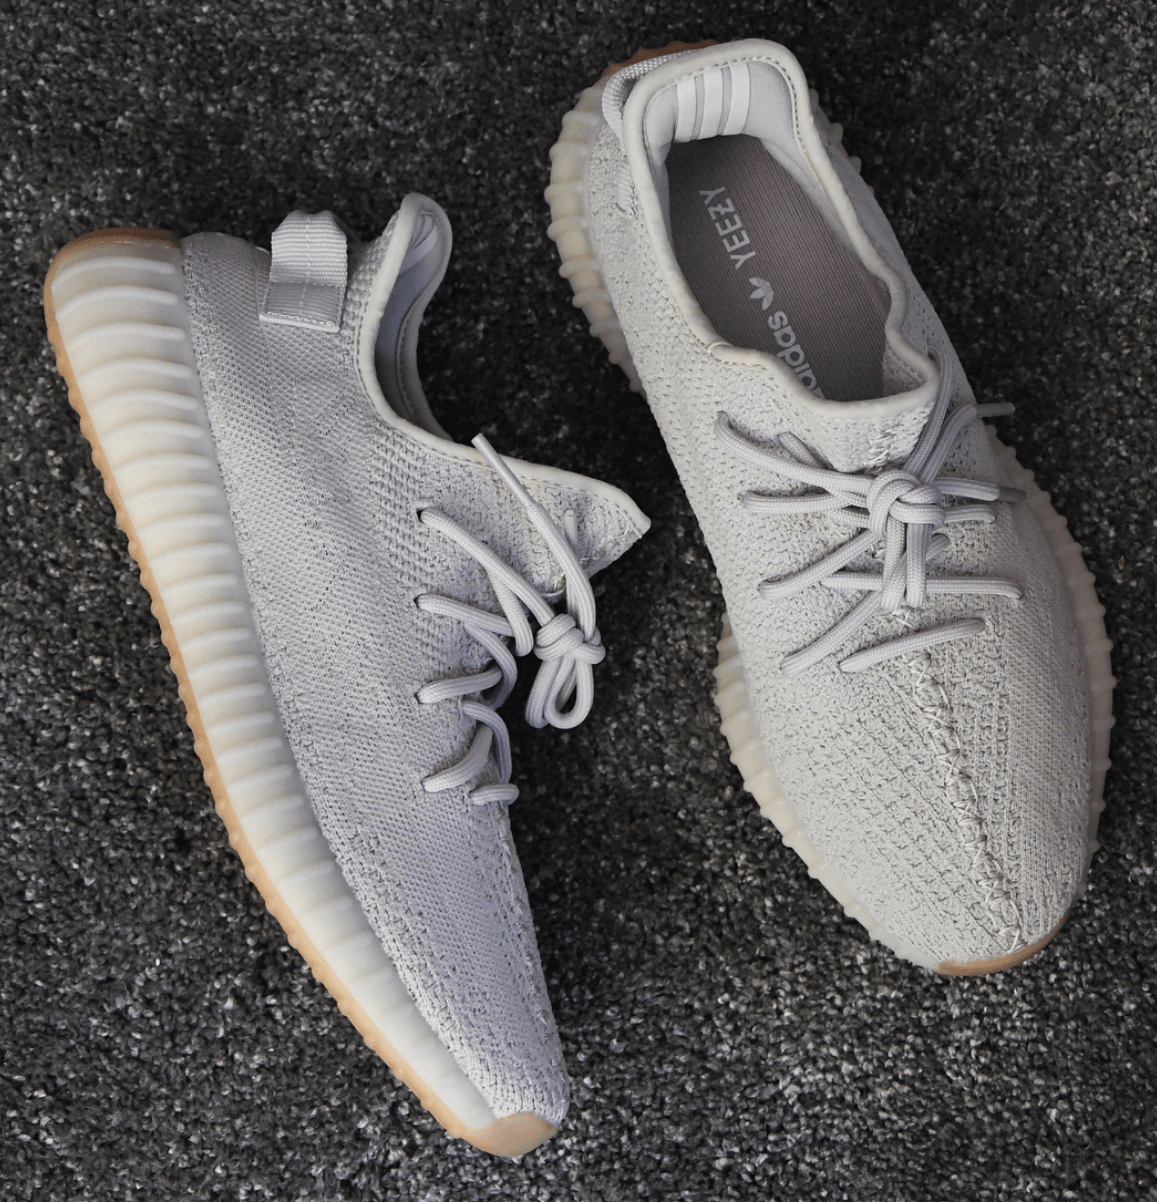 4af8bc6a Check out the adidas Yeezy Boost 350 V2 Sesame available on StockX ...